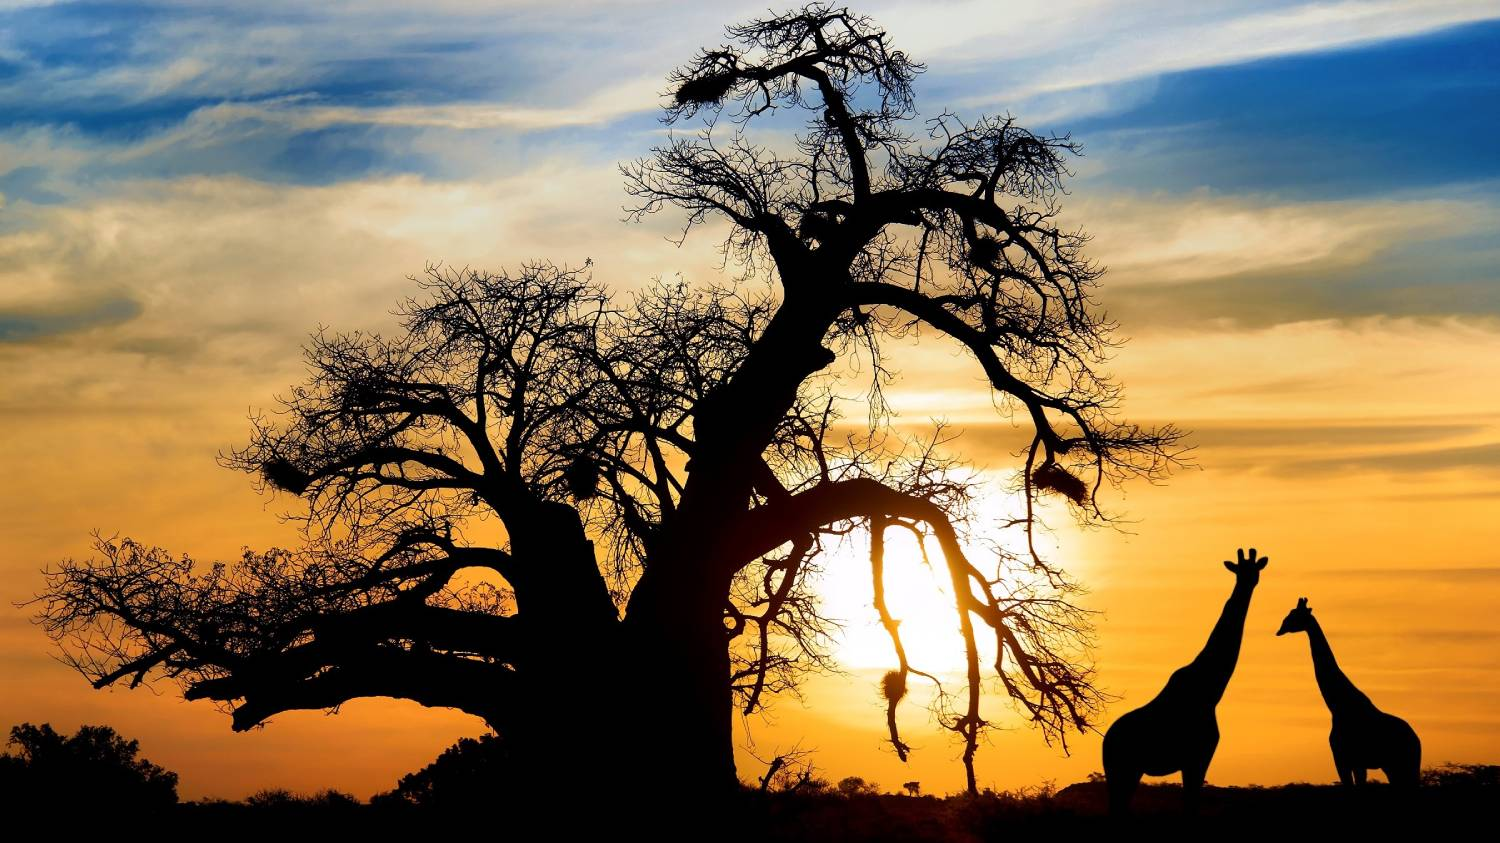 South Africa - The Best Countries To Visit In Africa